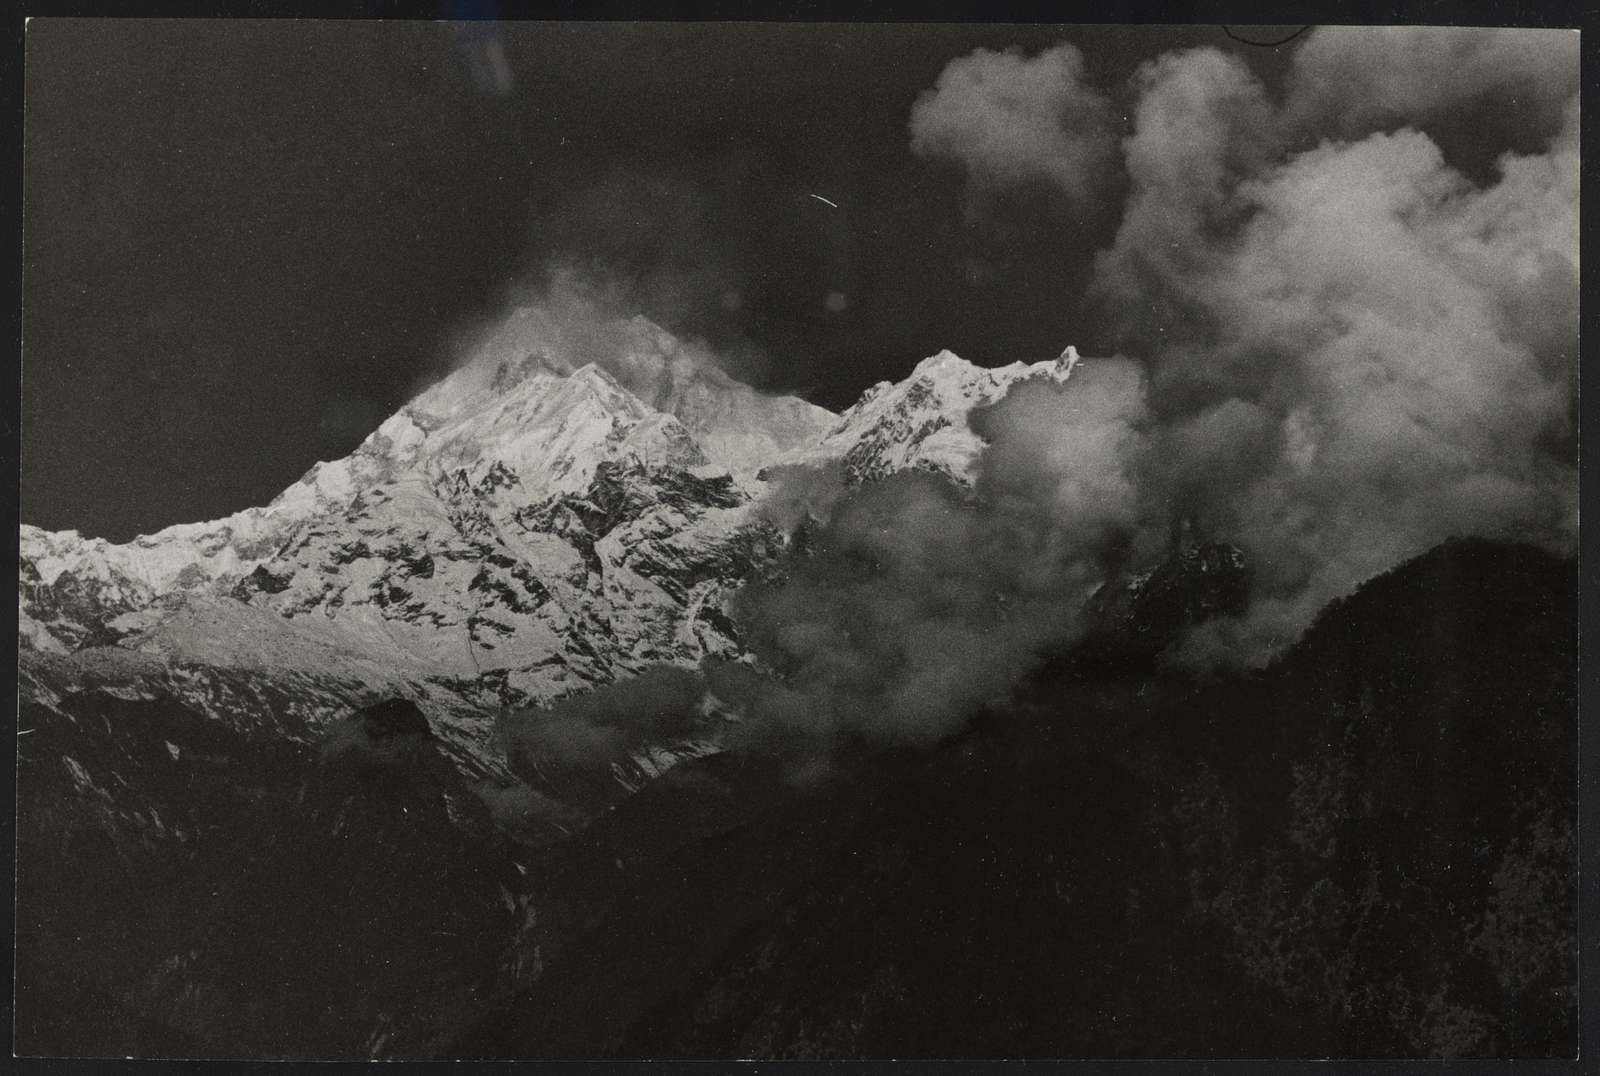 [Snow capped peaks of Mount Kānchenjunga, third highest mountain in the world]